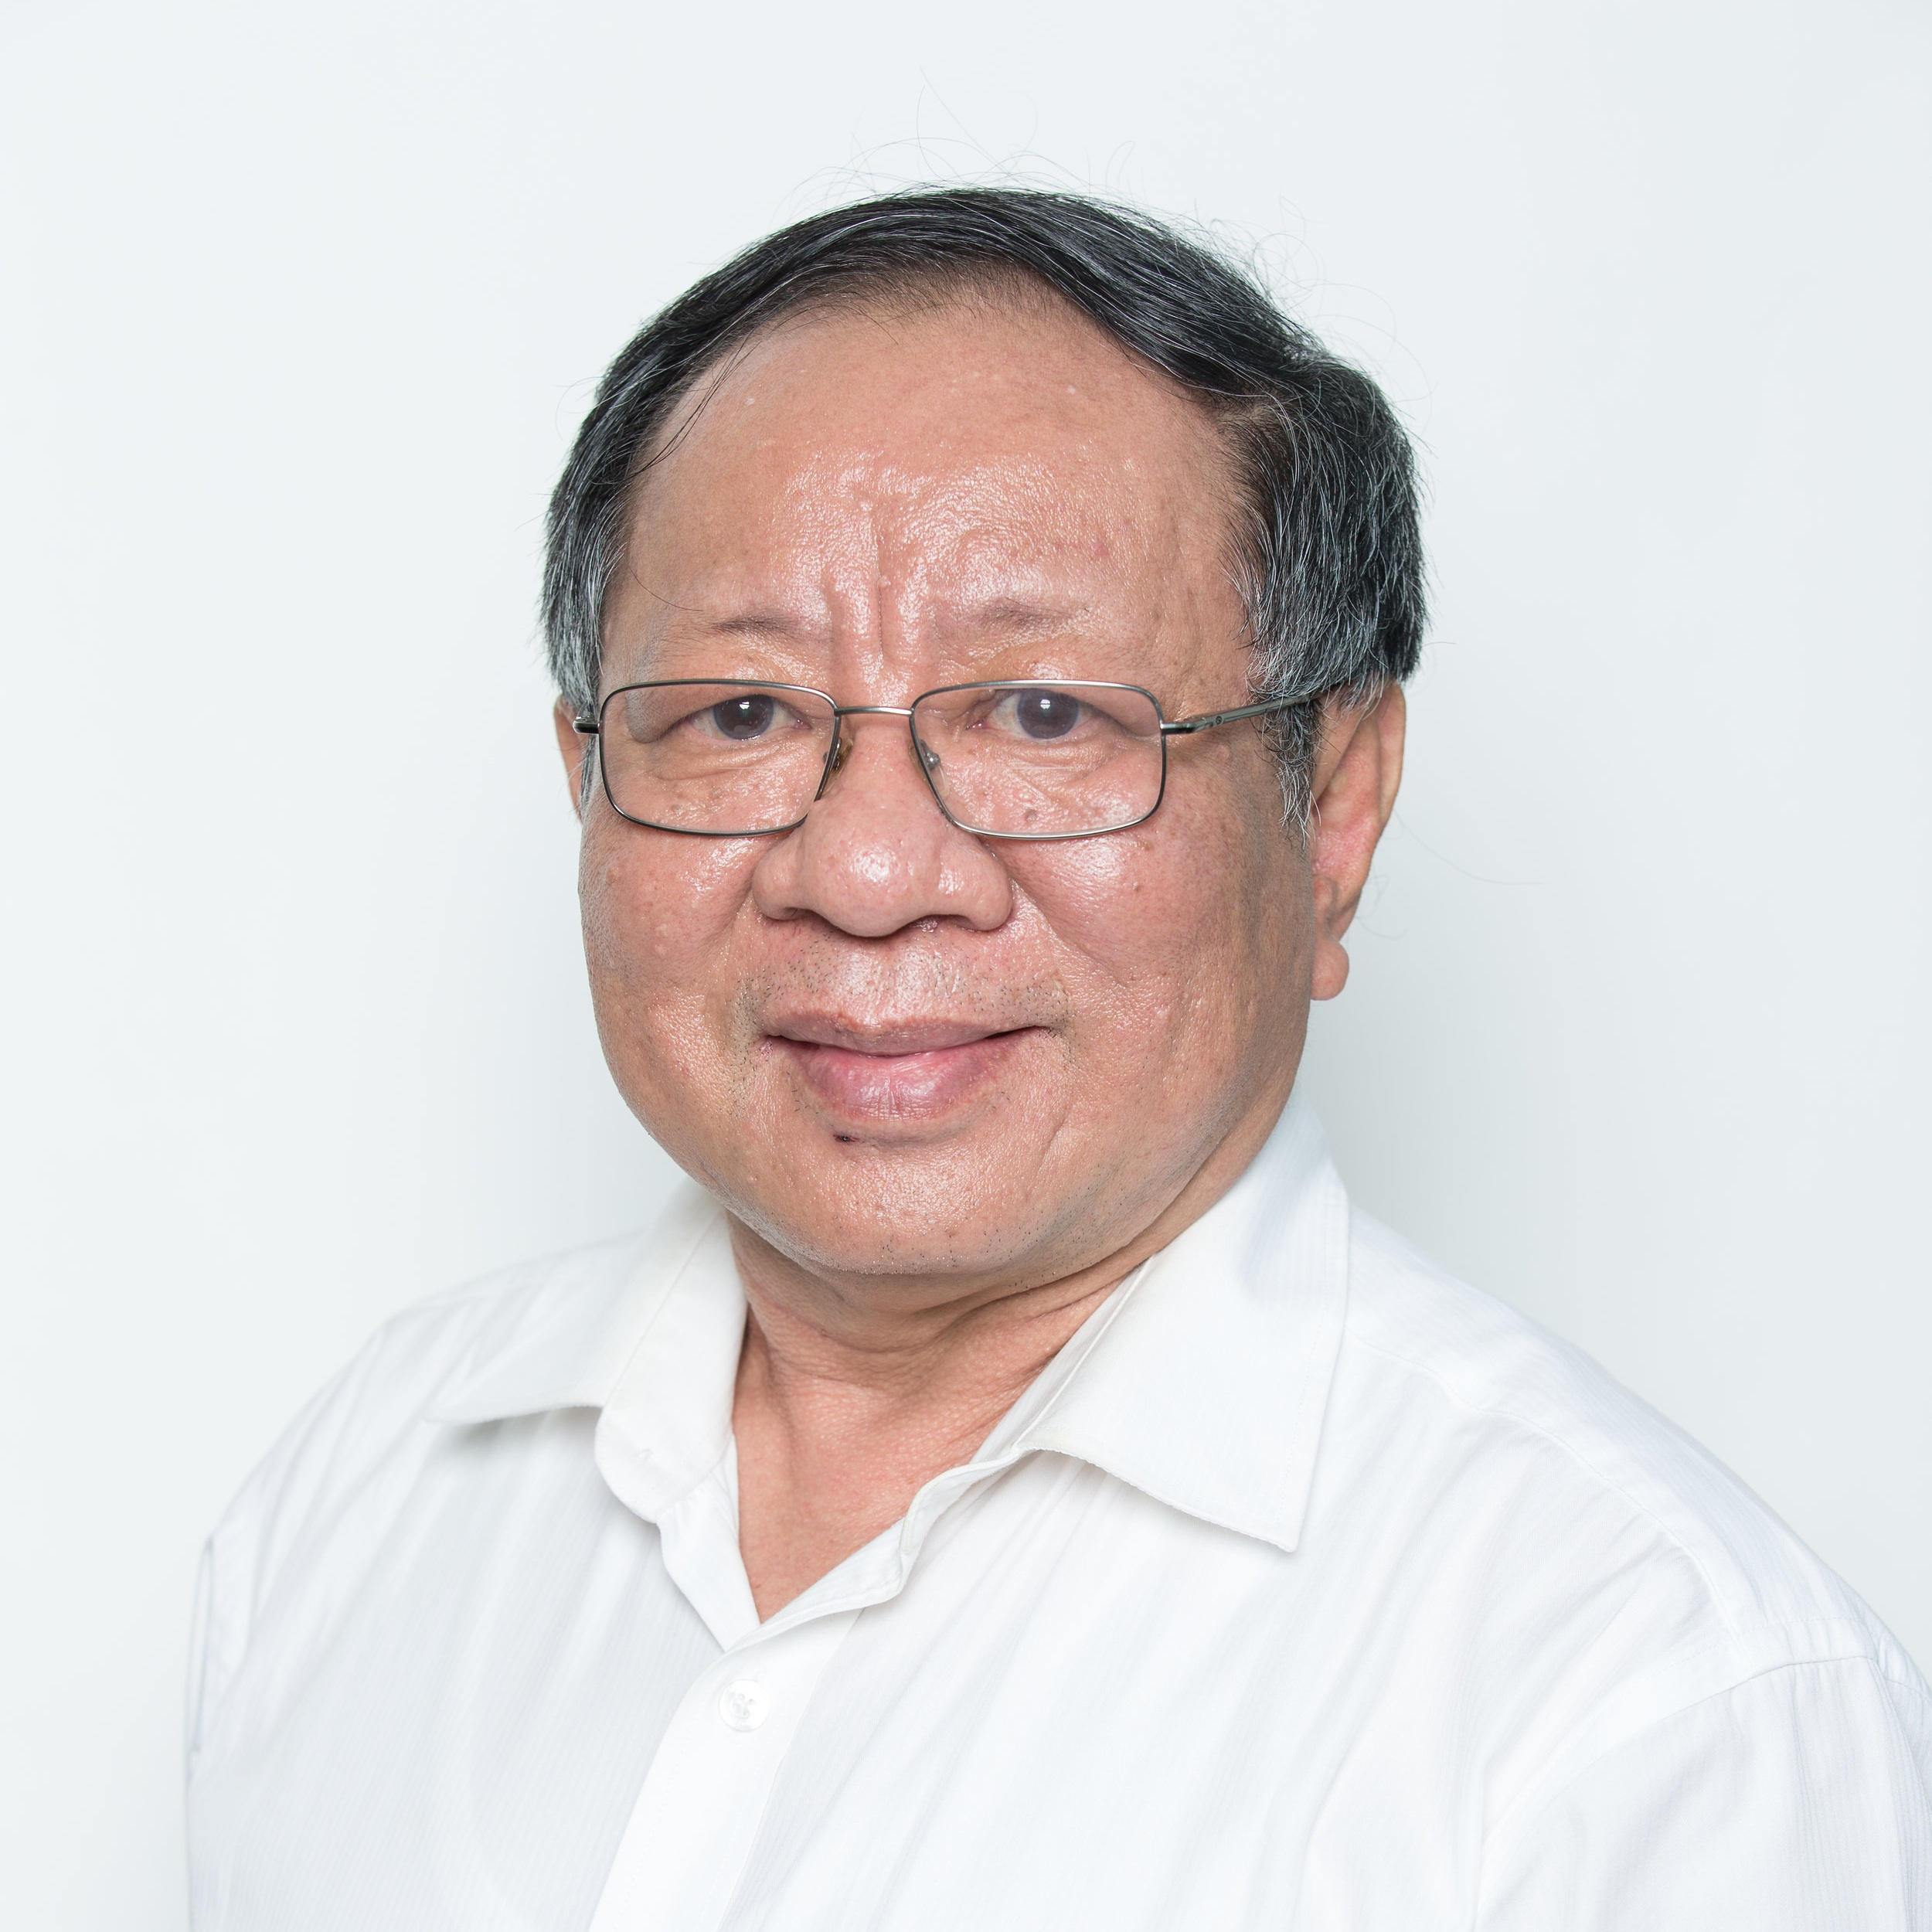 Nguyen Huu Dung - Vietnam Seaculture AssociationASIC Executive Committee, ASIC Shrimp Steering Committee, ASIC Fish Steering Committee